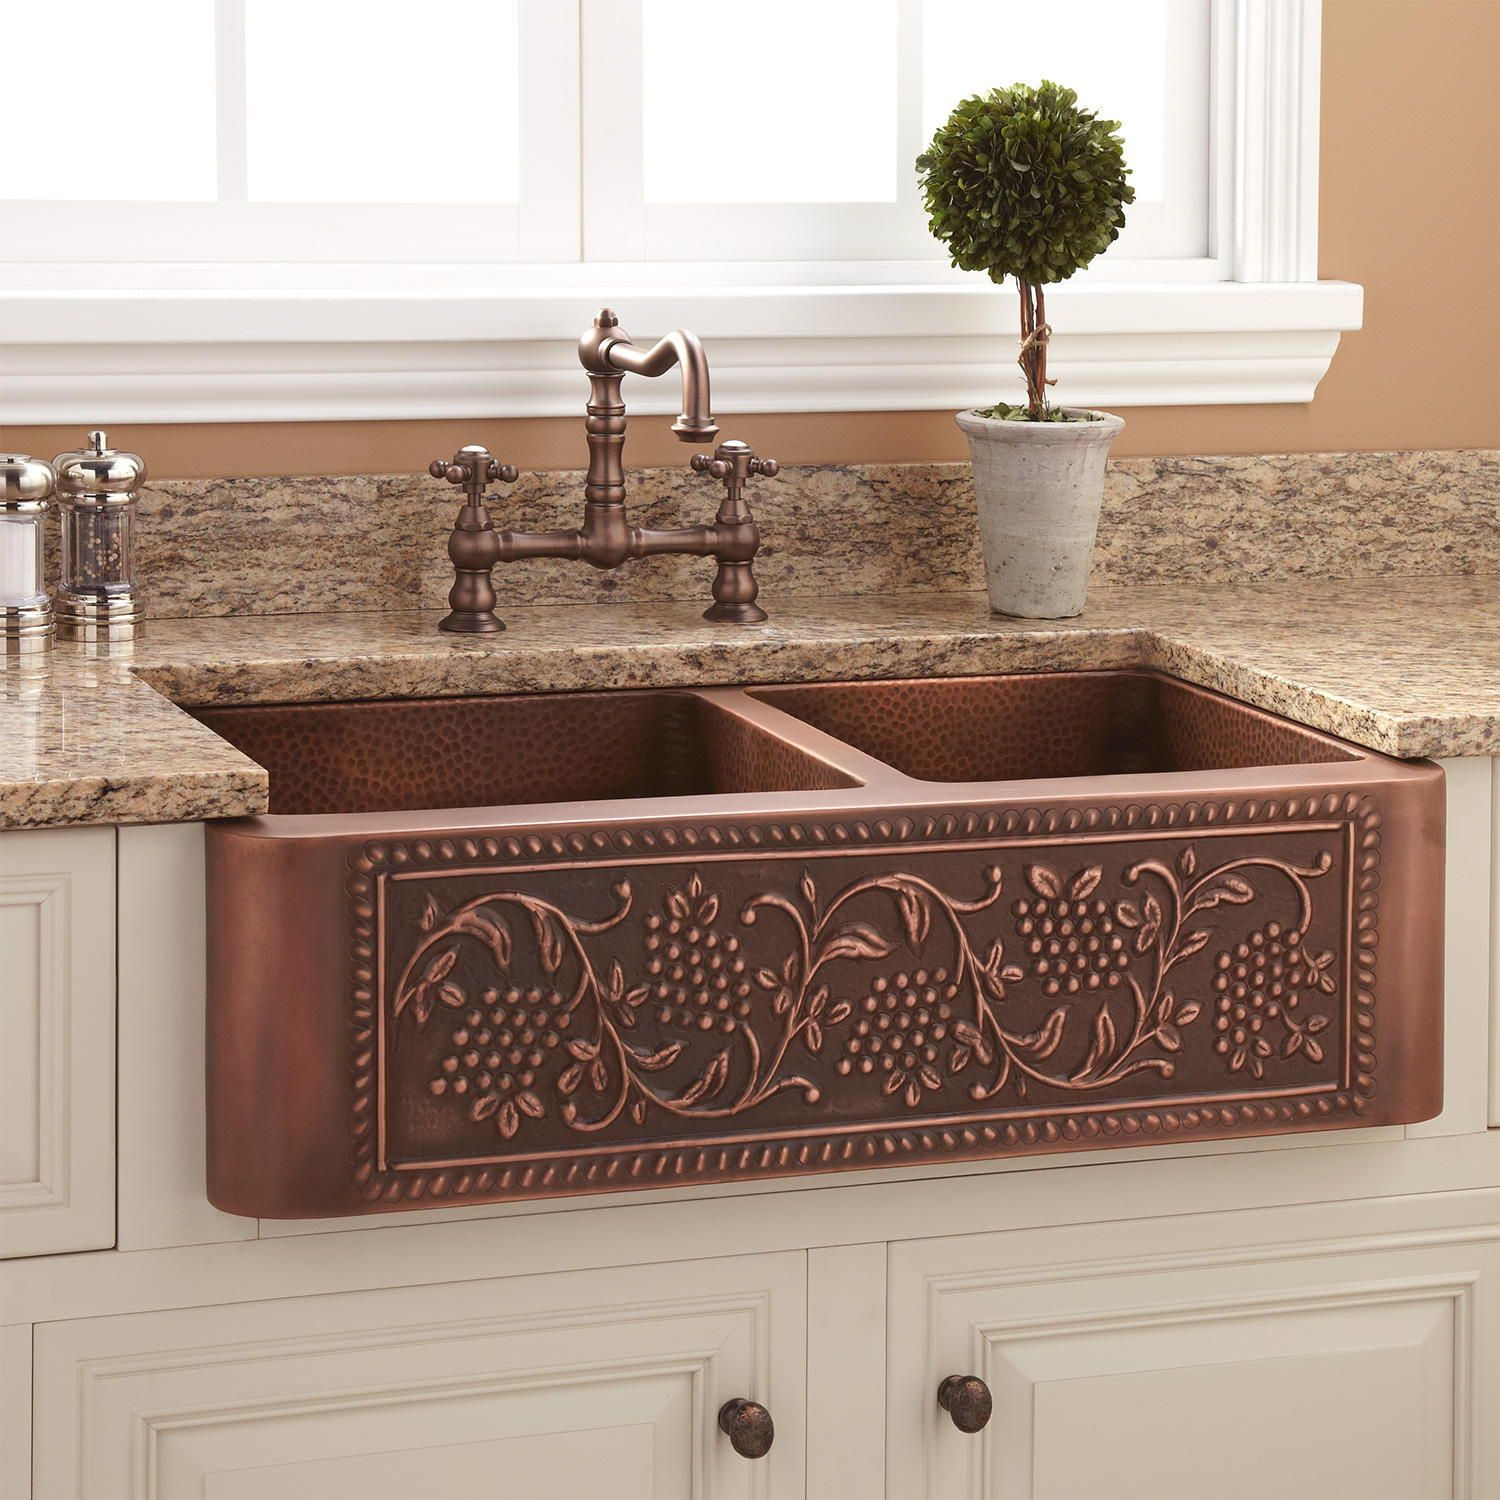 Copper Farmhouse Workstation Sink With Muted Earth Tone Patina